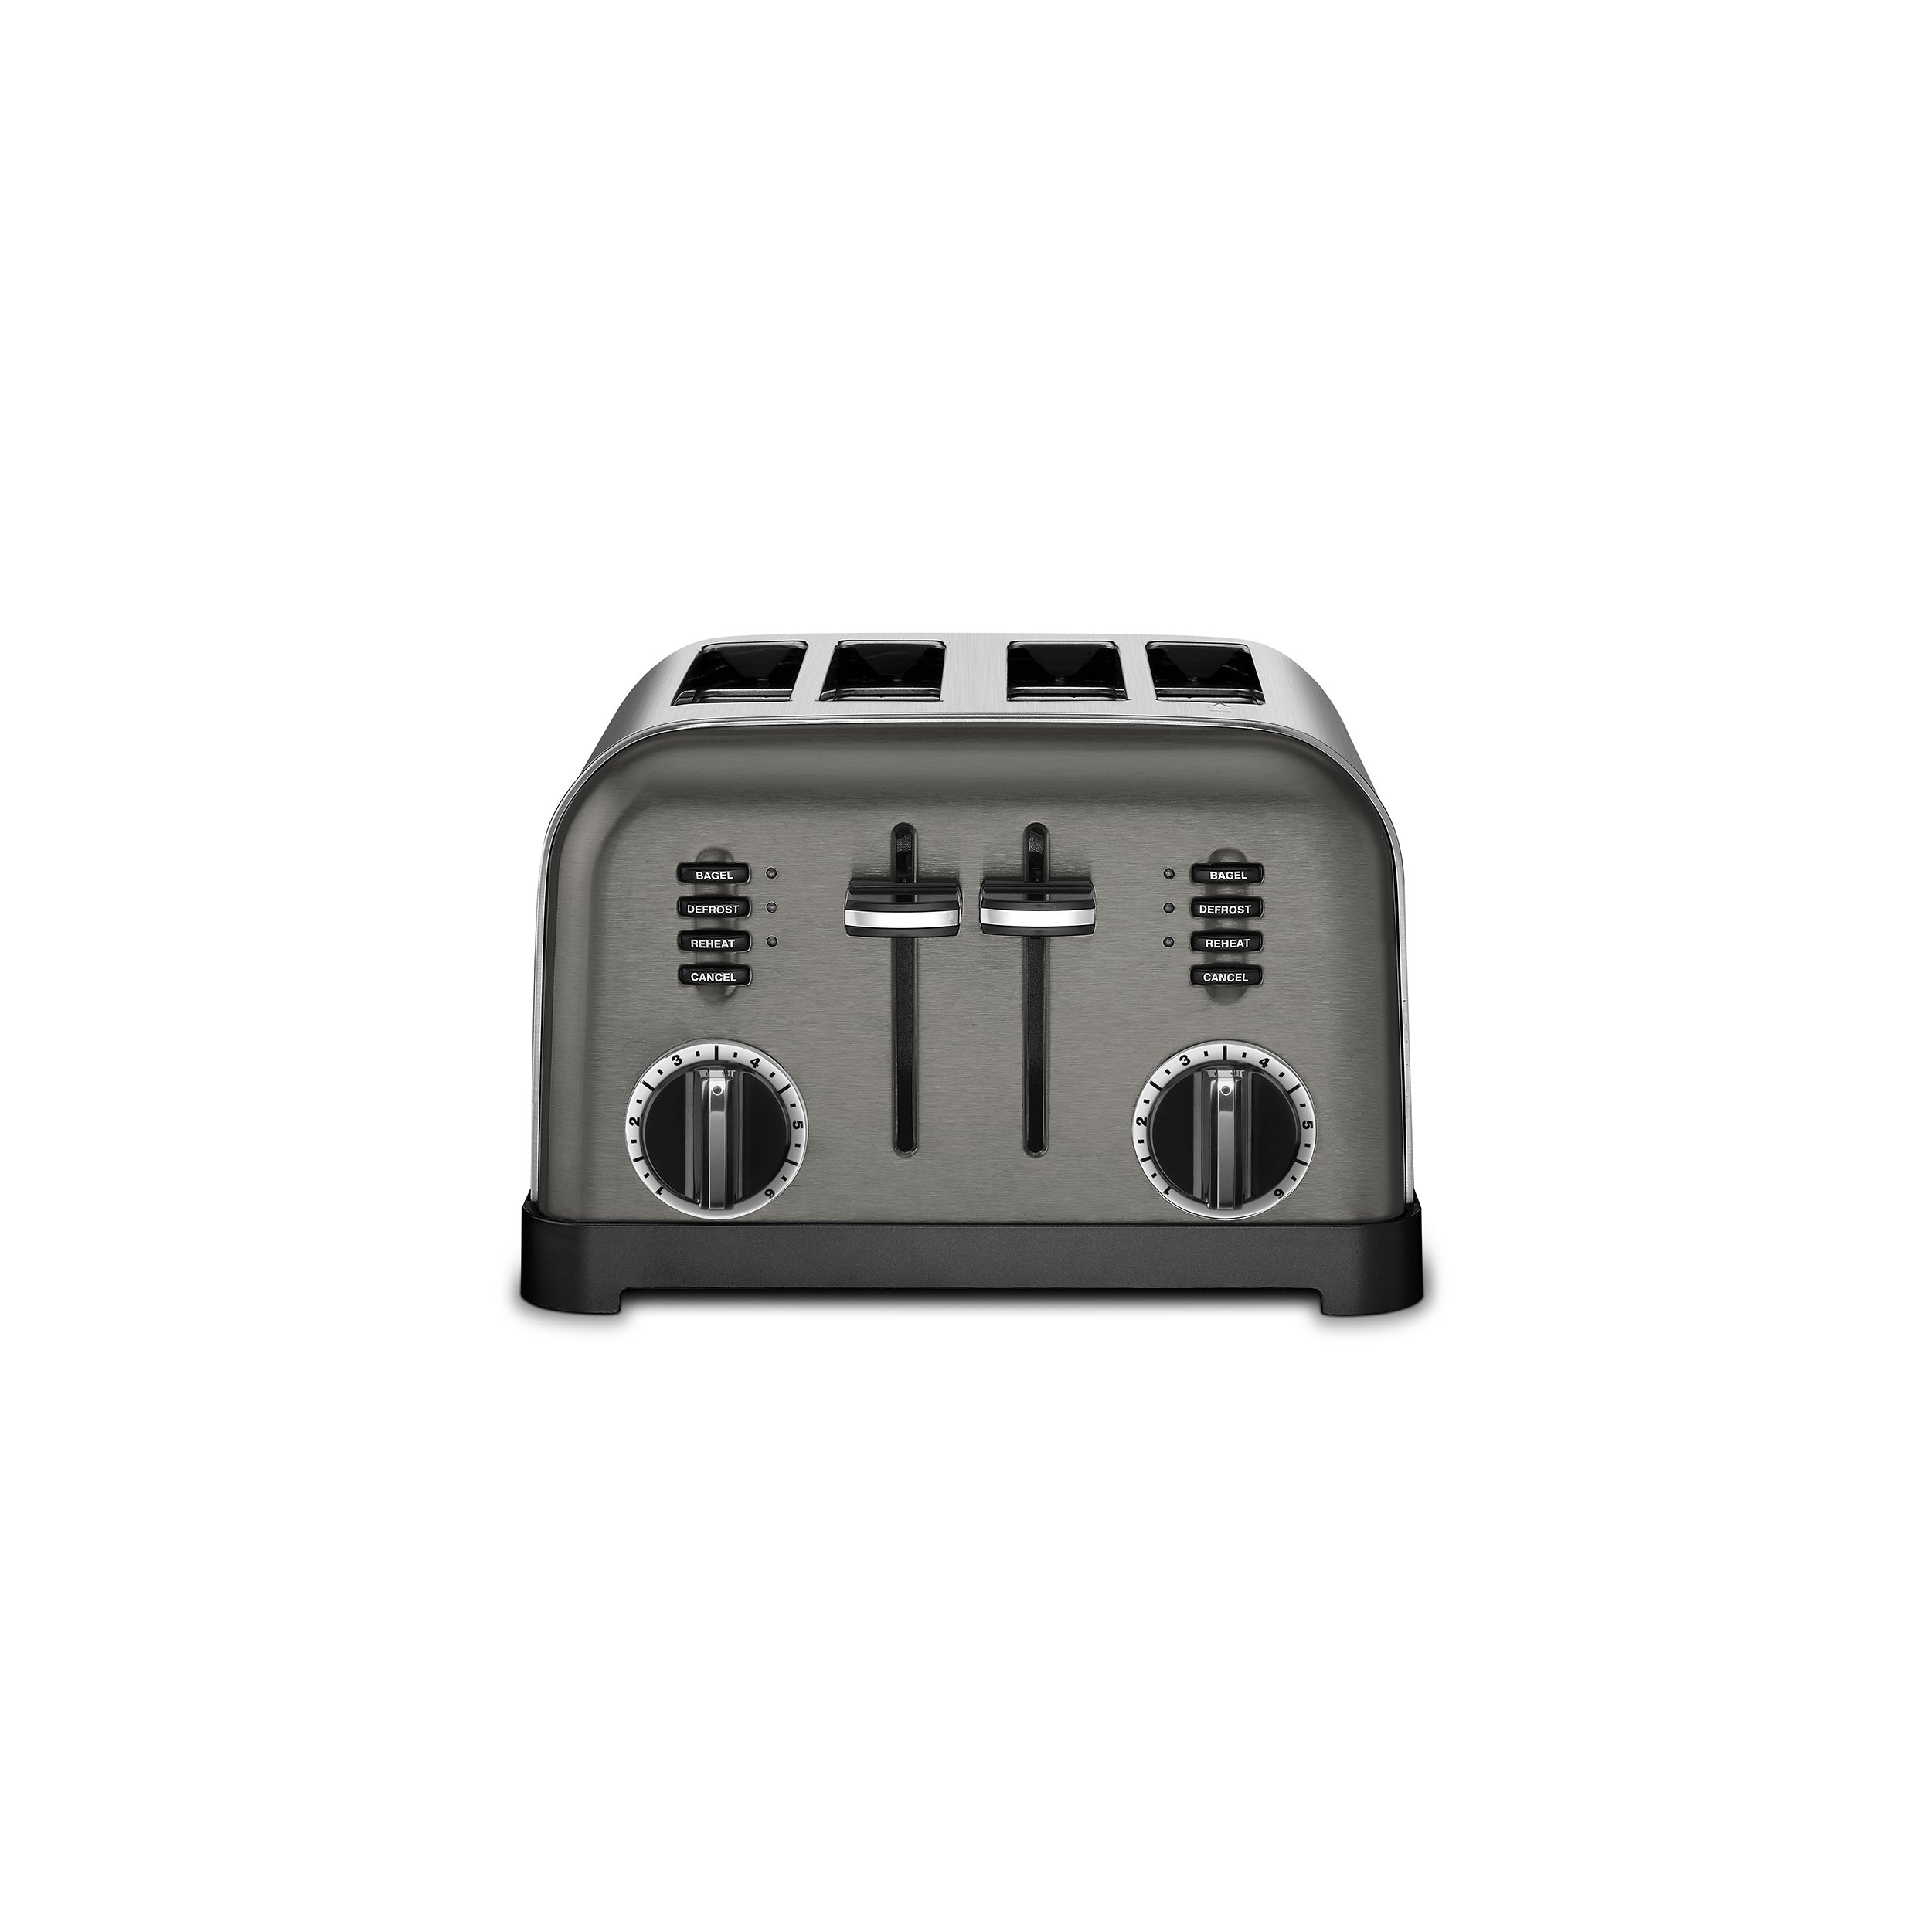 Cuisinart CPT-180BKS Metal Classic Toaster, 4-Slice, Black Stainless by Cuisinart